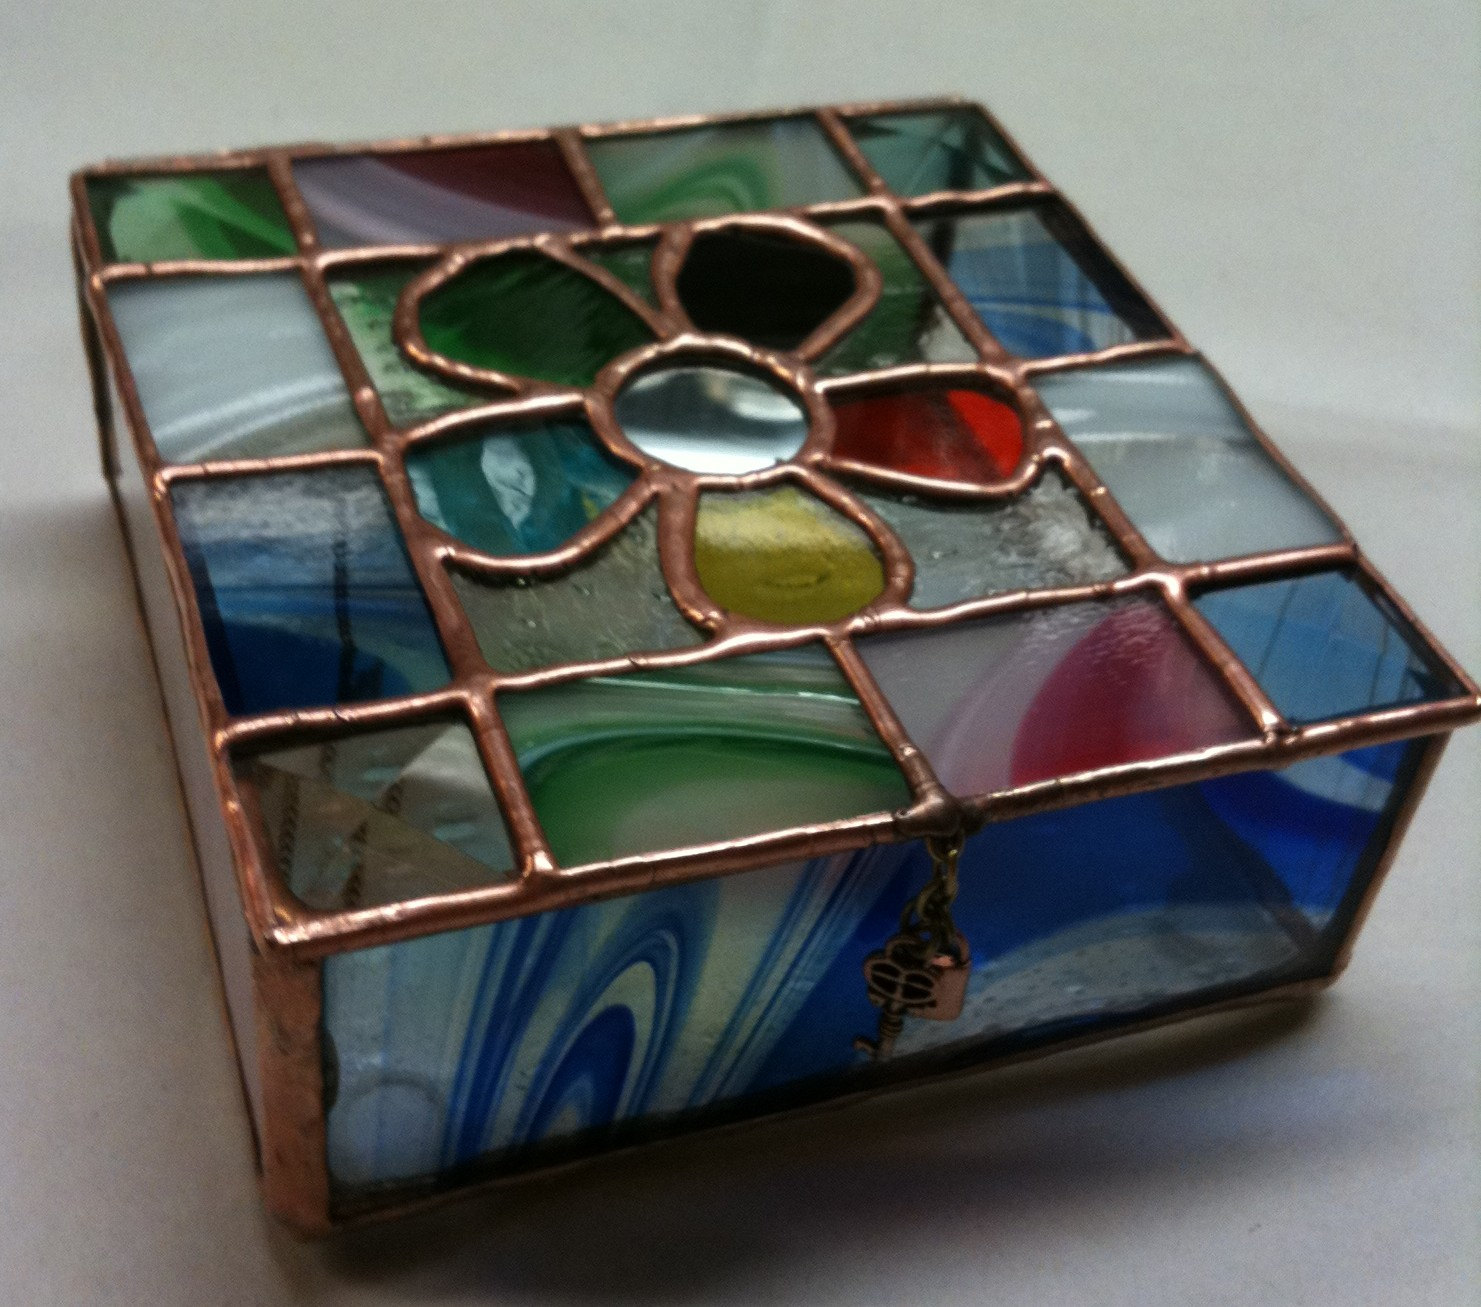 Buy Stained Glass Jewelry Box from M/s. Svocan Handicrafts ...